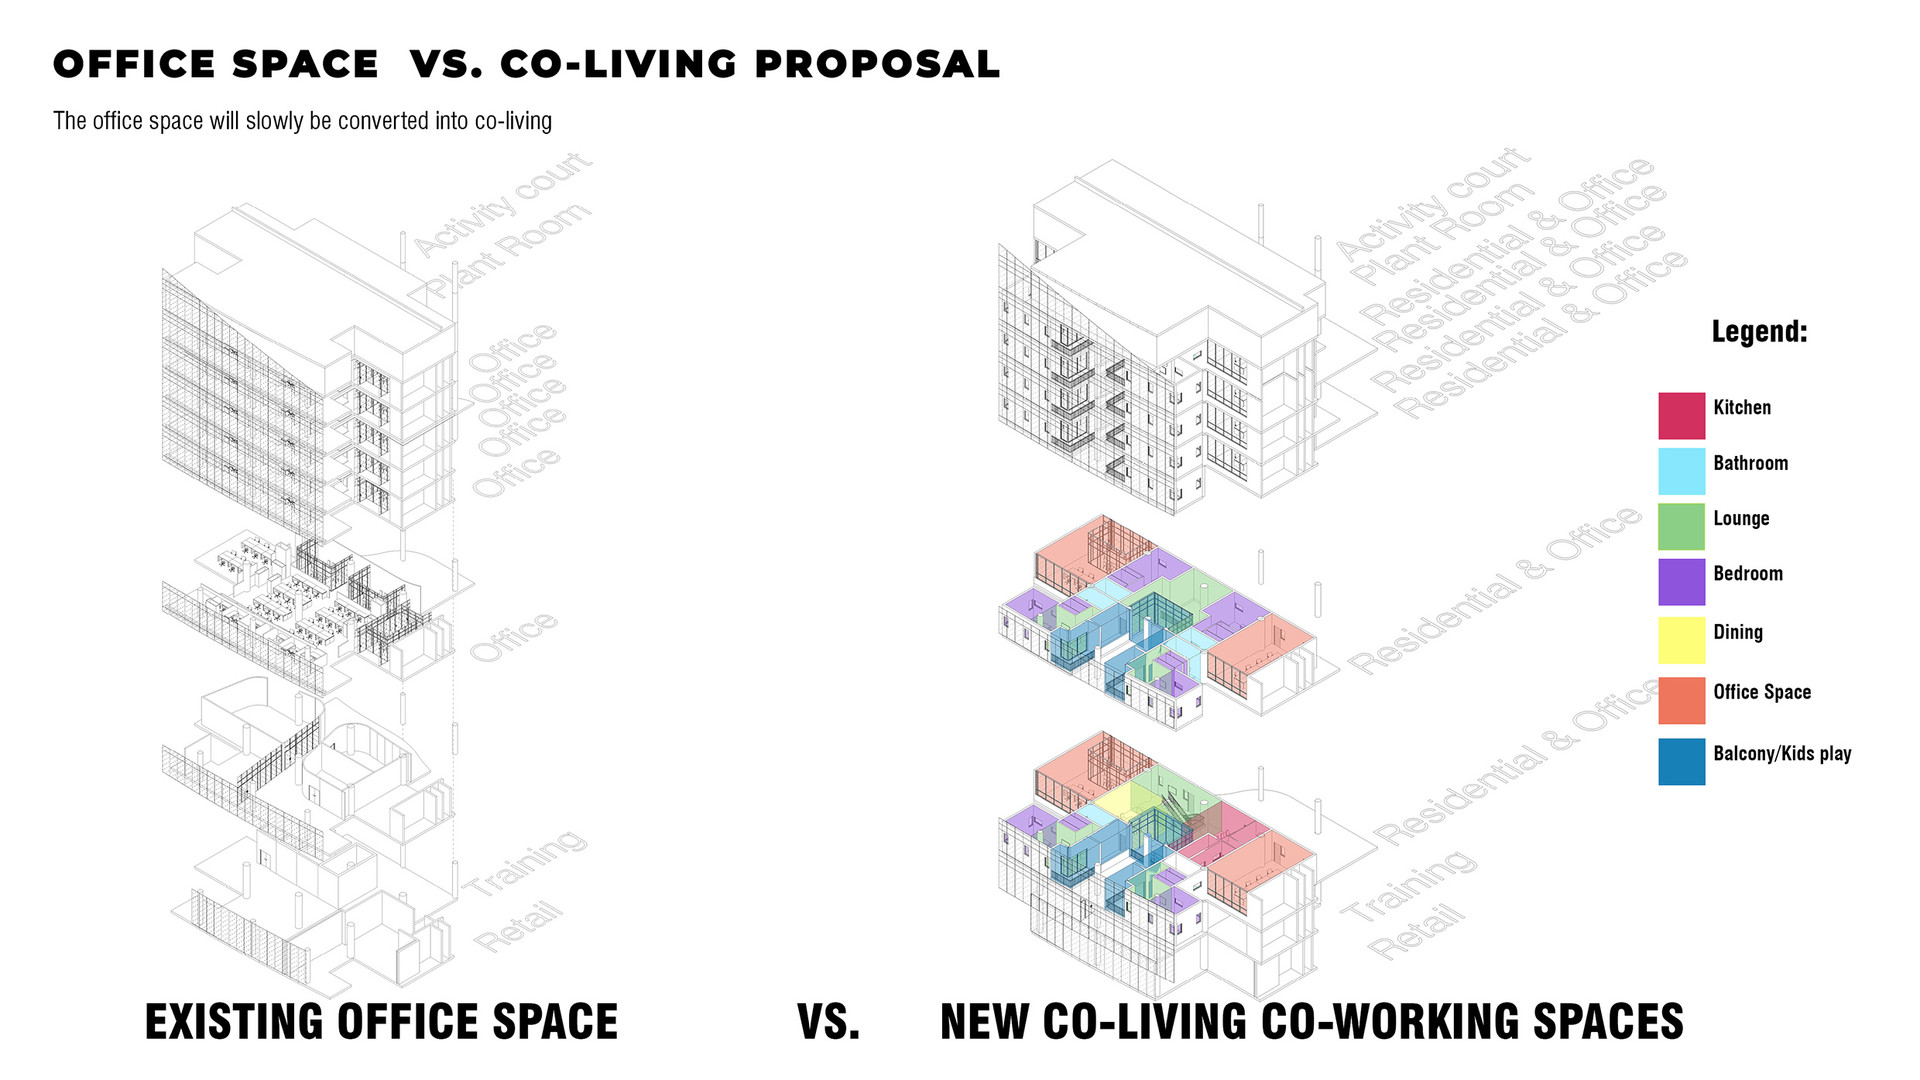 Discovery building office space converted into co-living space. Mothilal, H. Unit 17. 2020.